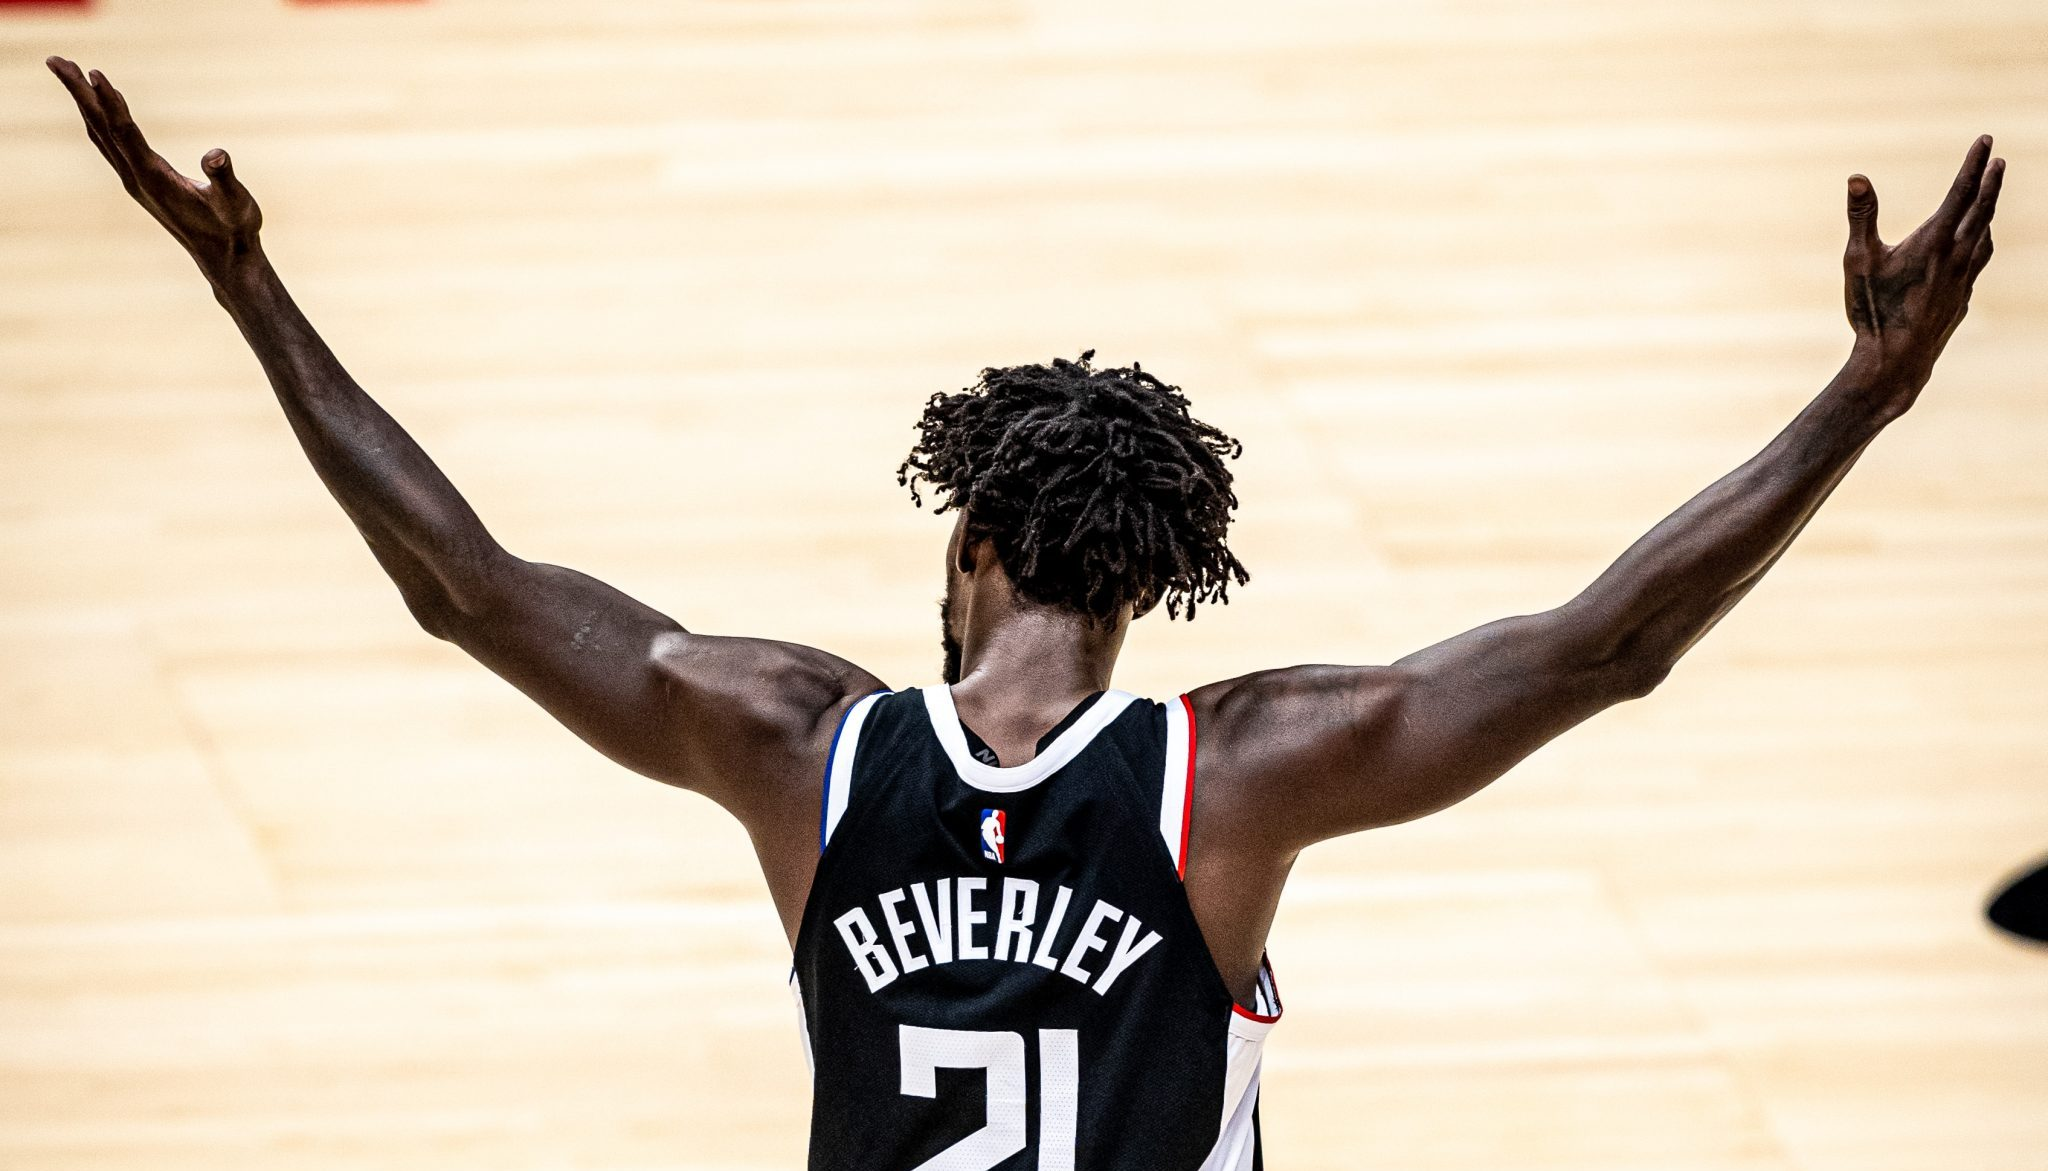 Patrick Beverley Out With Hand Fracture, Re-Evaluated in 3-4 Weeks